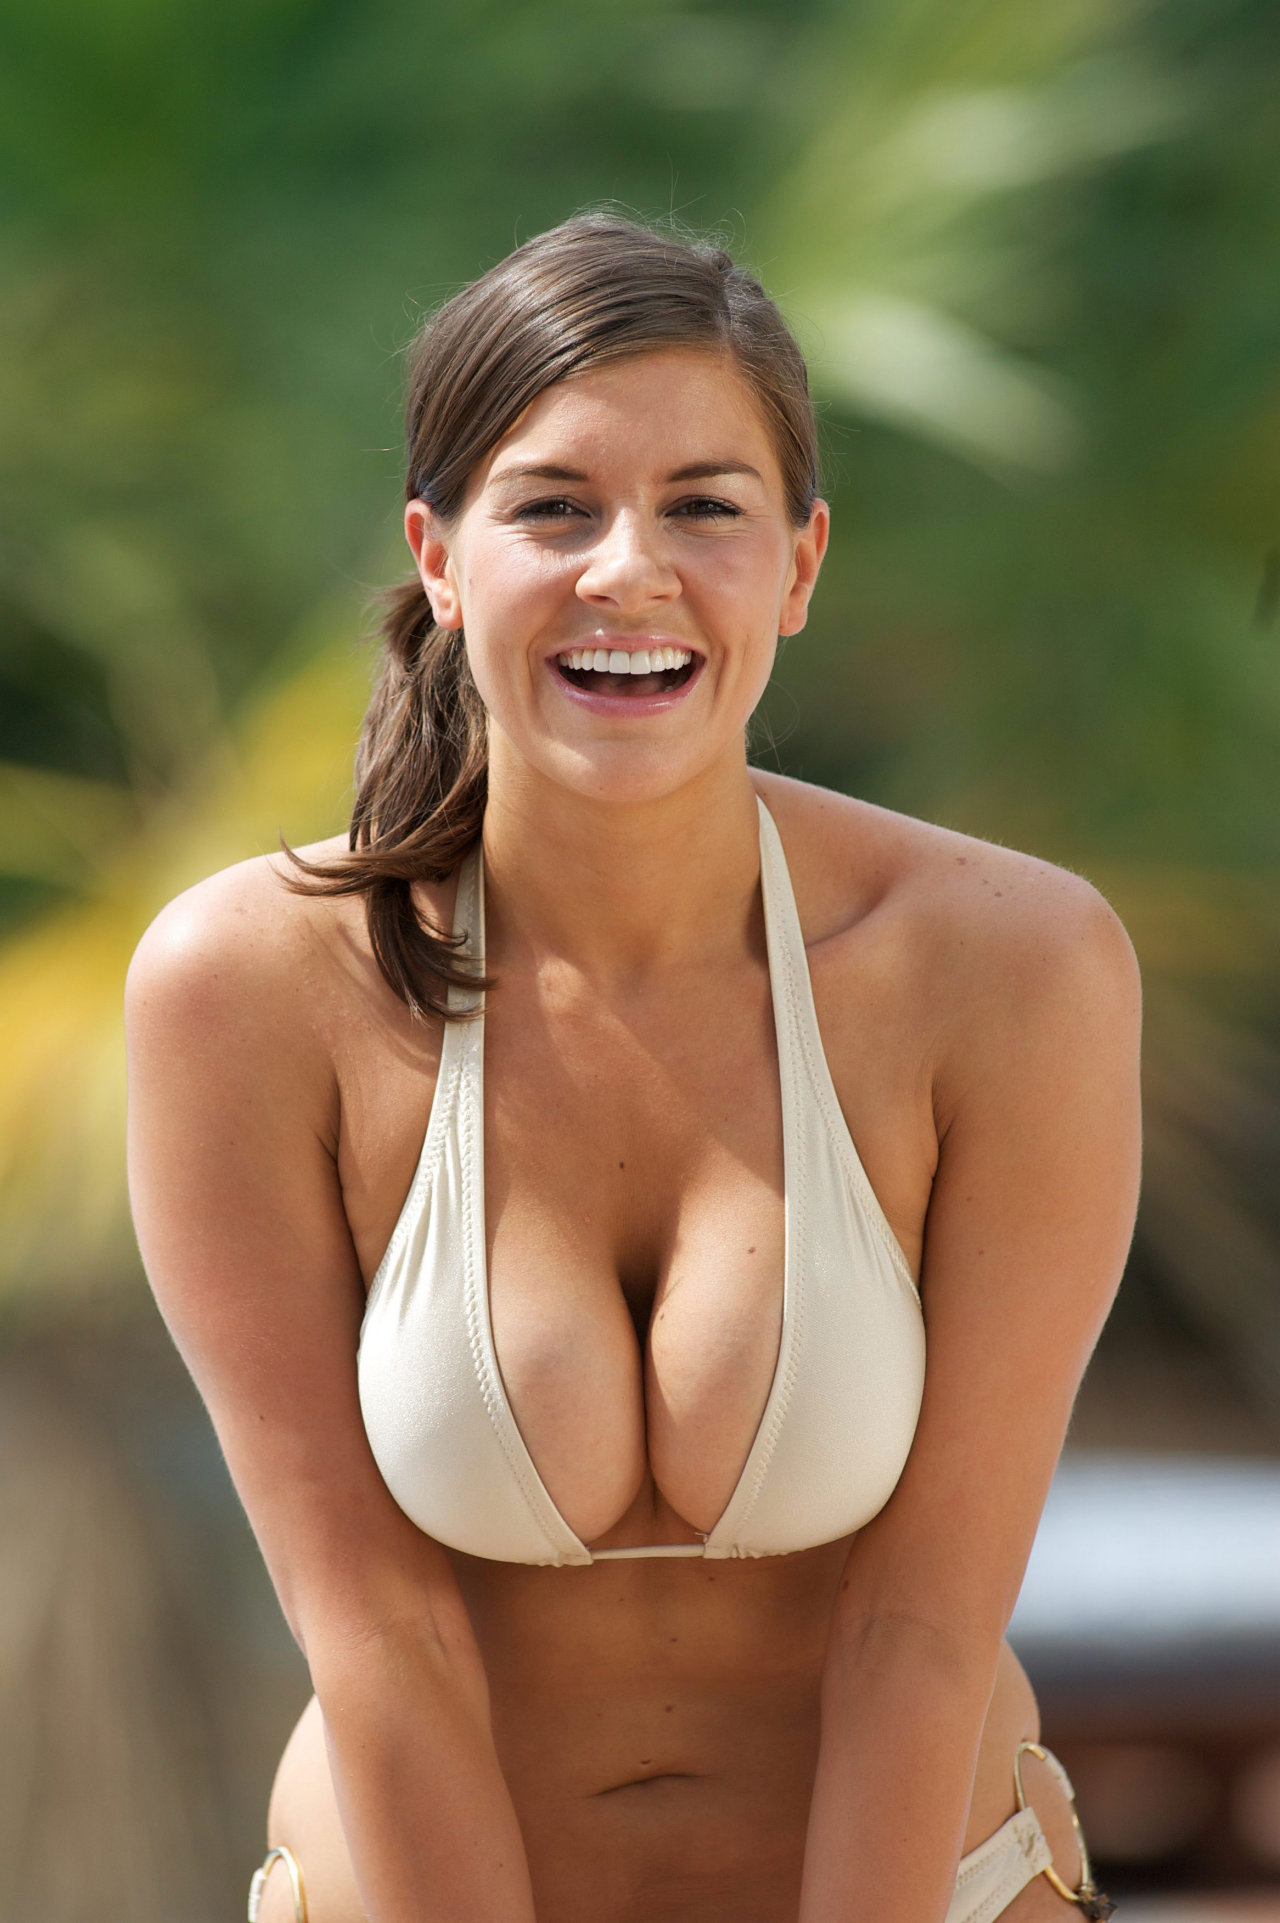 imogen thomas sex Imogen Thomas tells all about sex with Ryan Giggs?